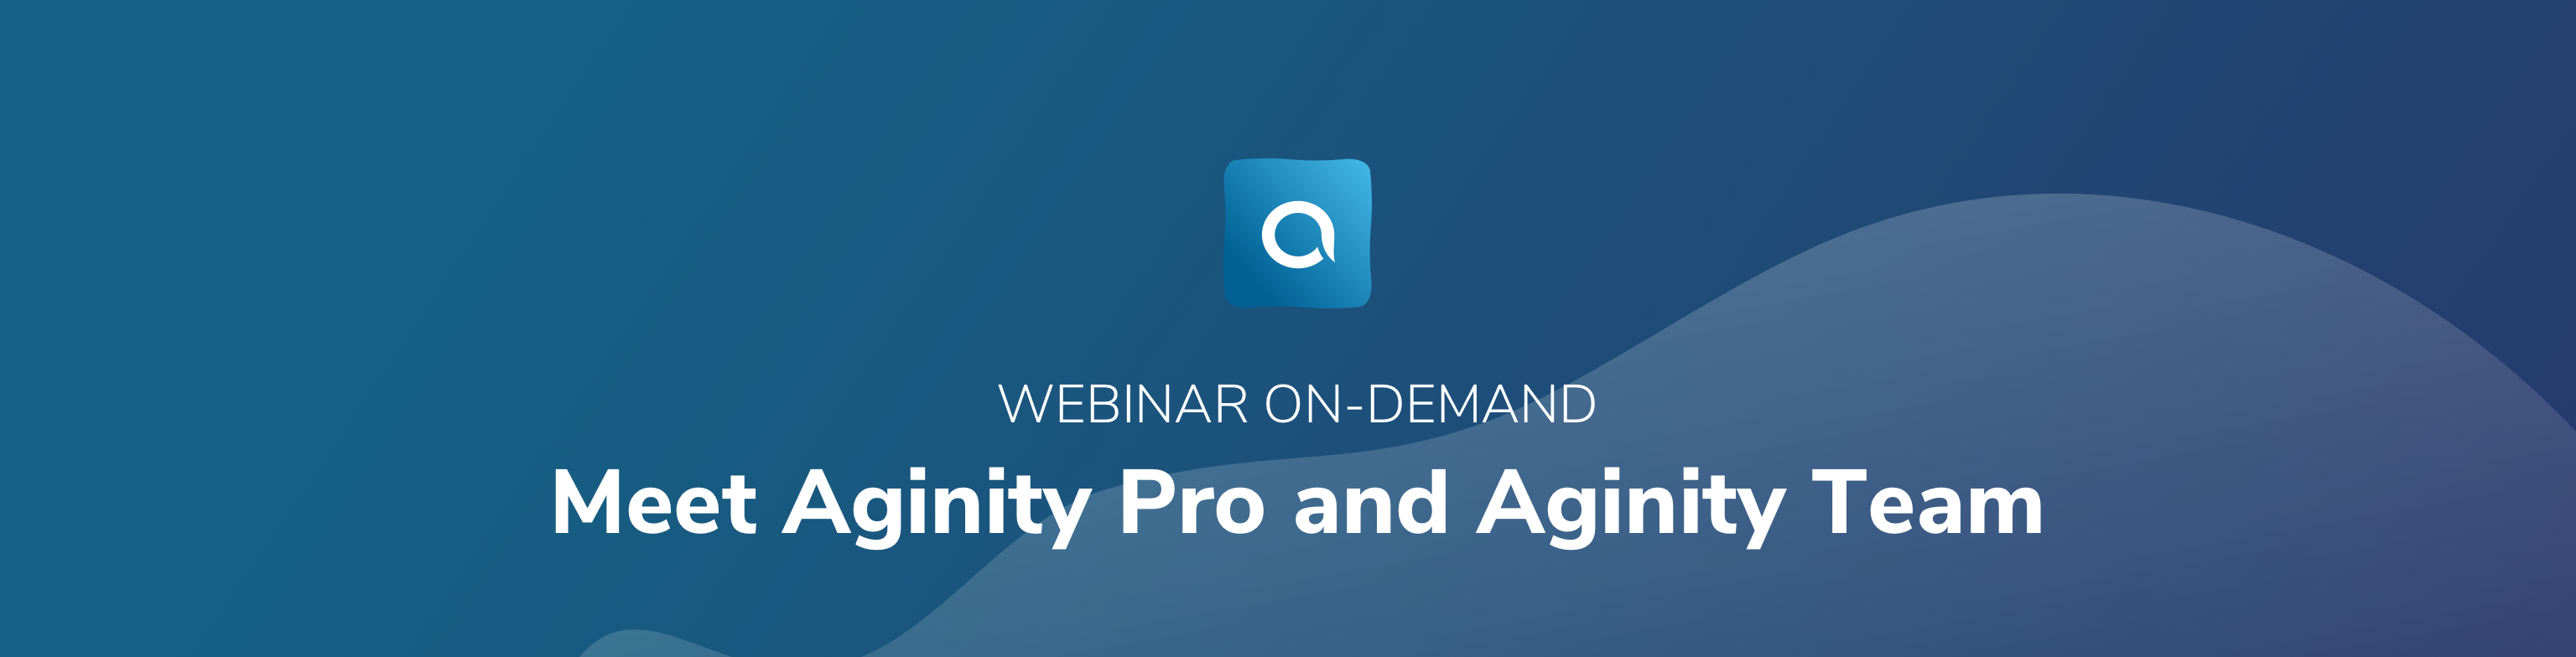 Aginity Pro and Team Webinar On-Demand-1